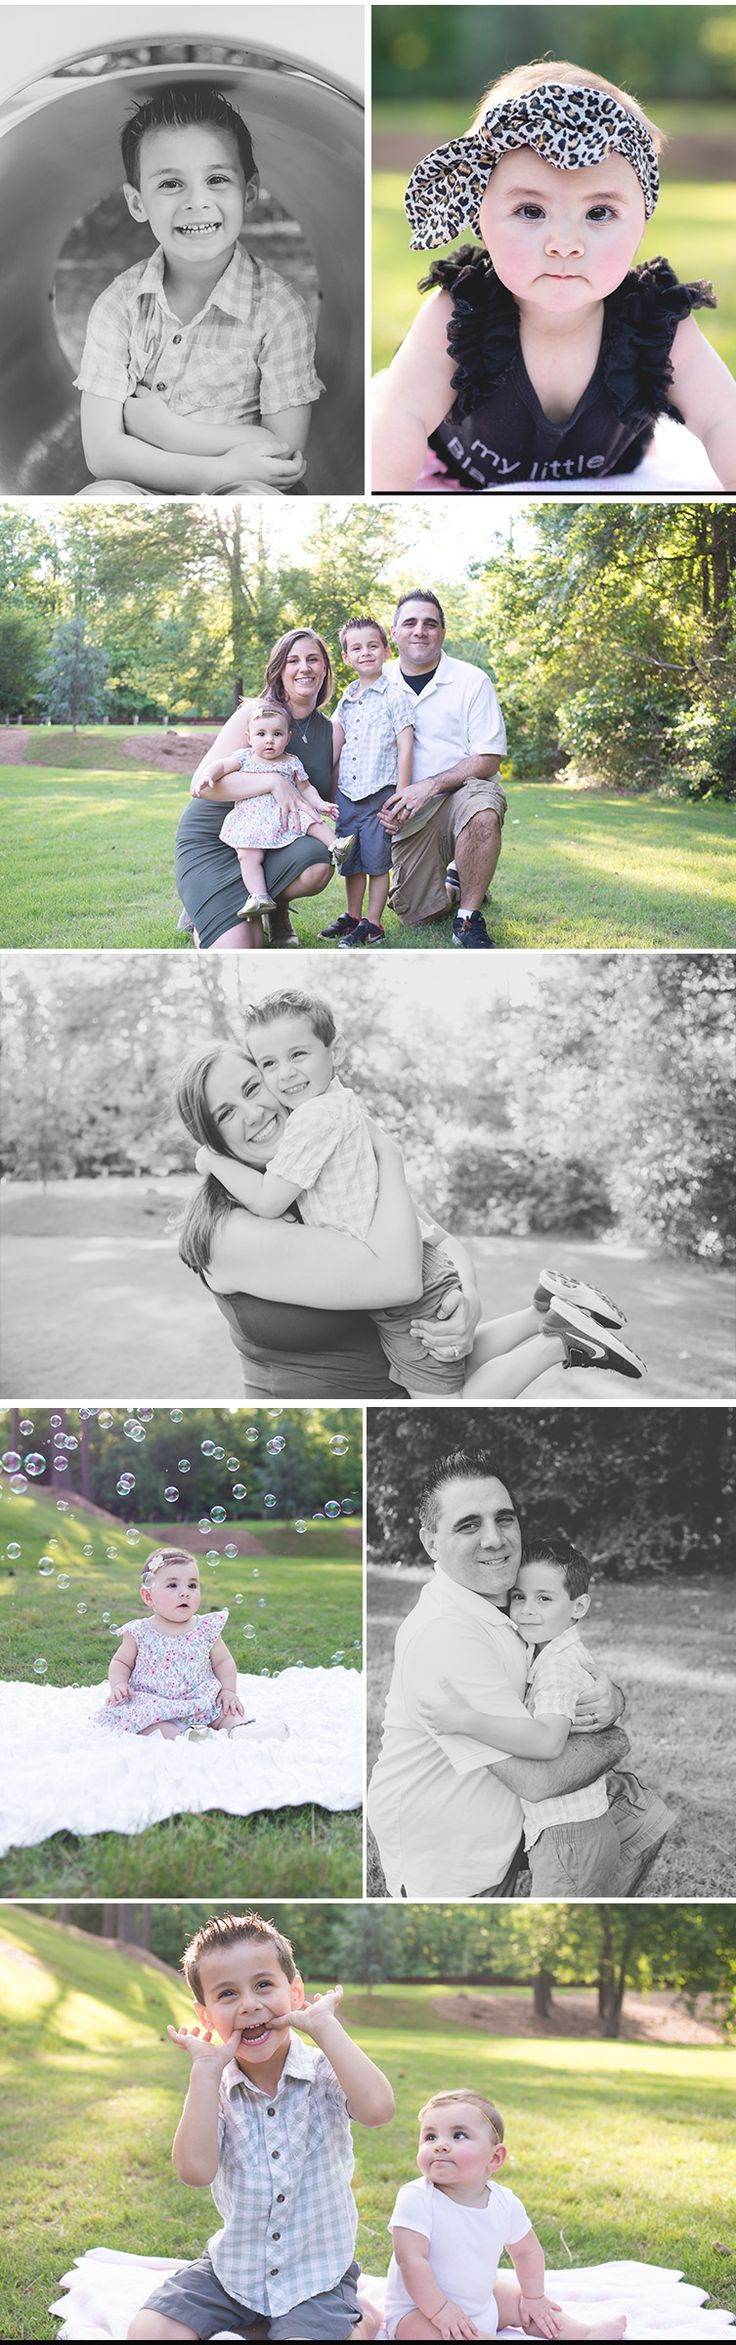 Sweet family portraits outside | Sunshine pictures | Family photo ideas | Outdoor photo shoot with kids